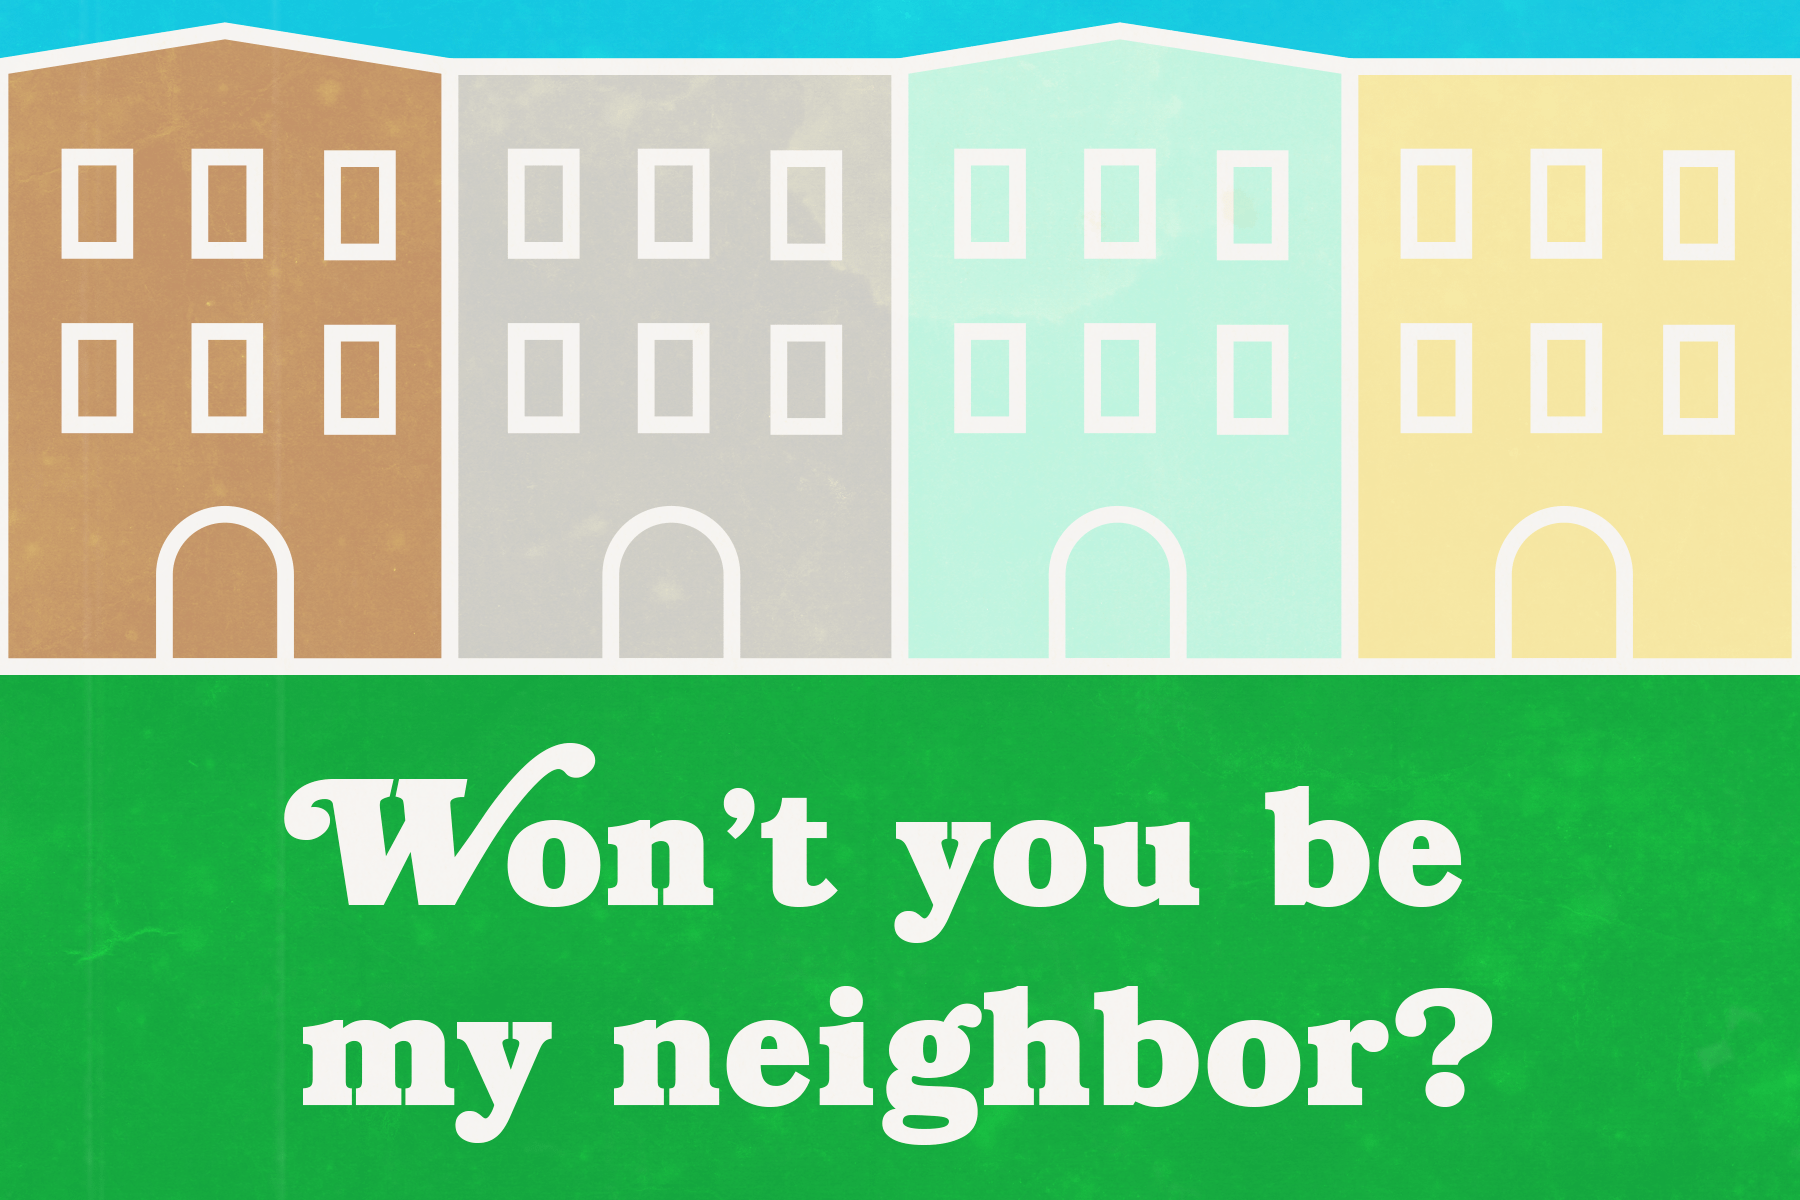 Be my neighbor?